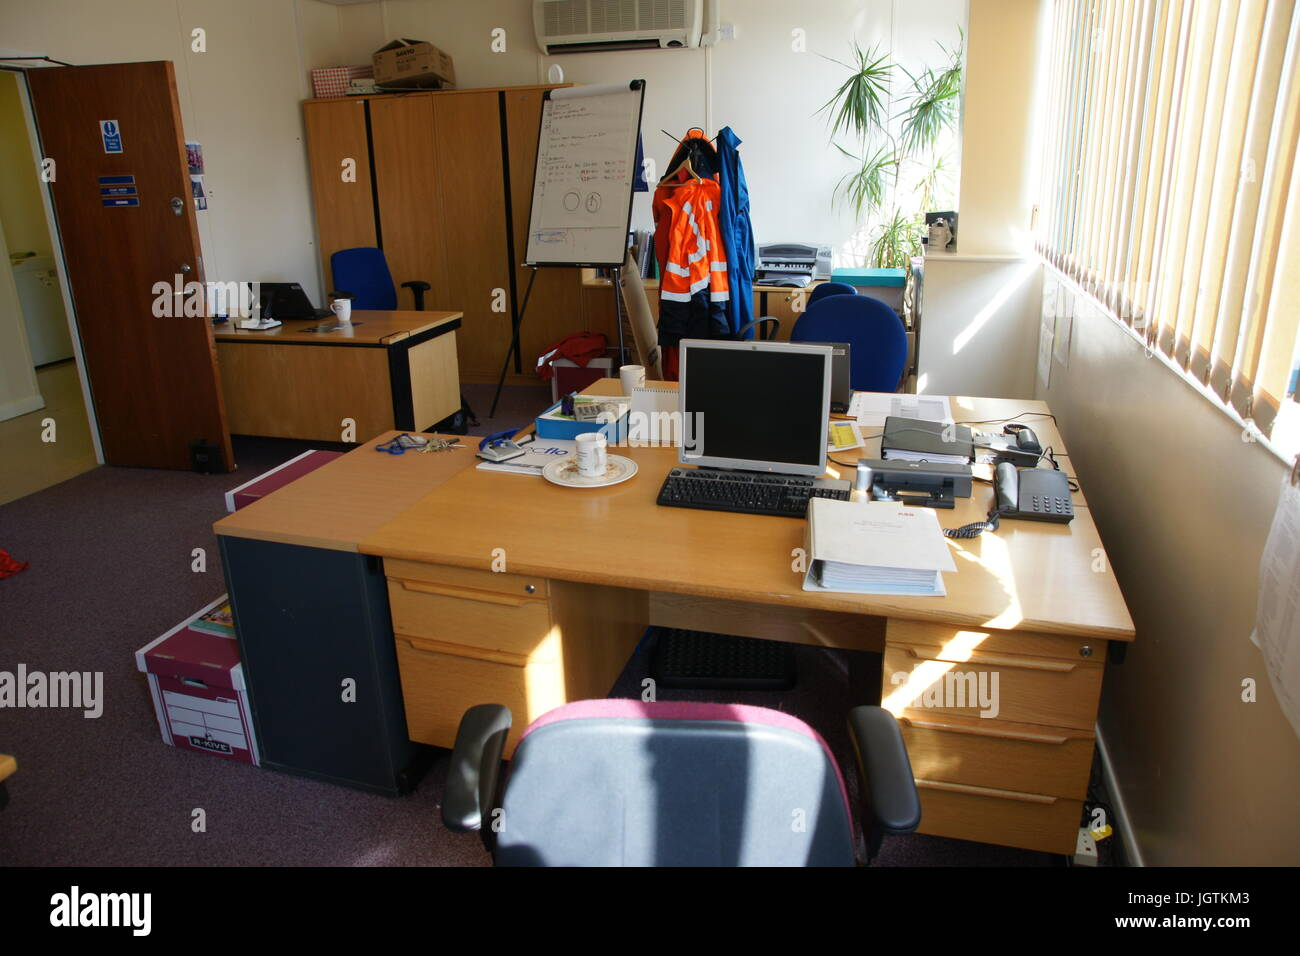 office, work environment Stock Photo